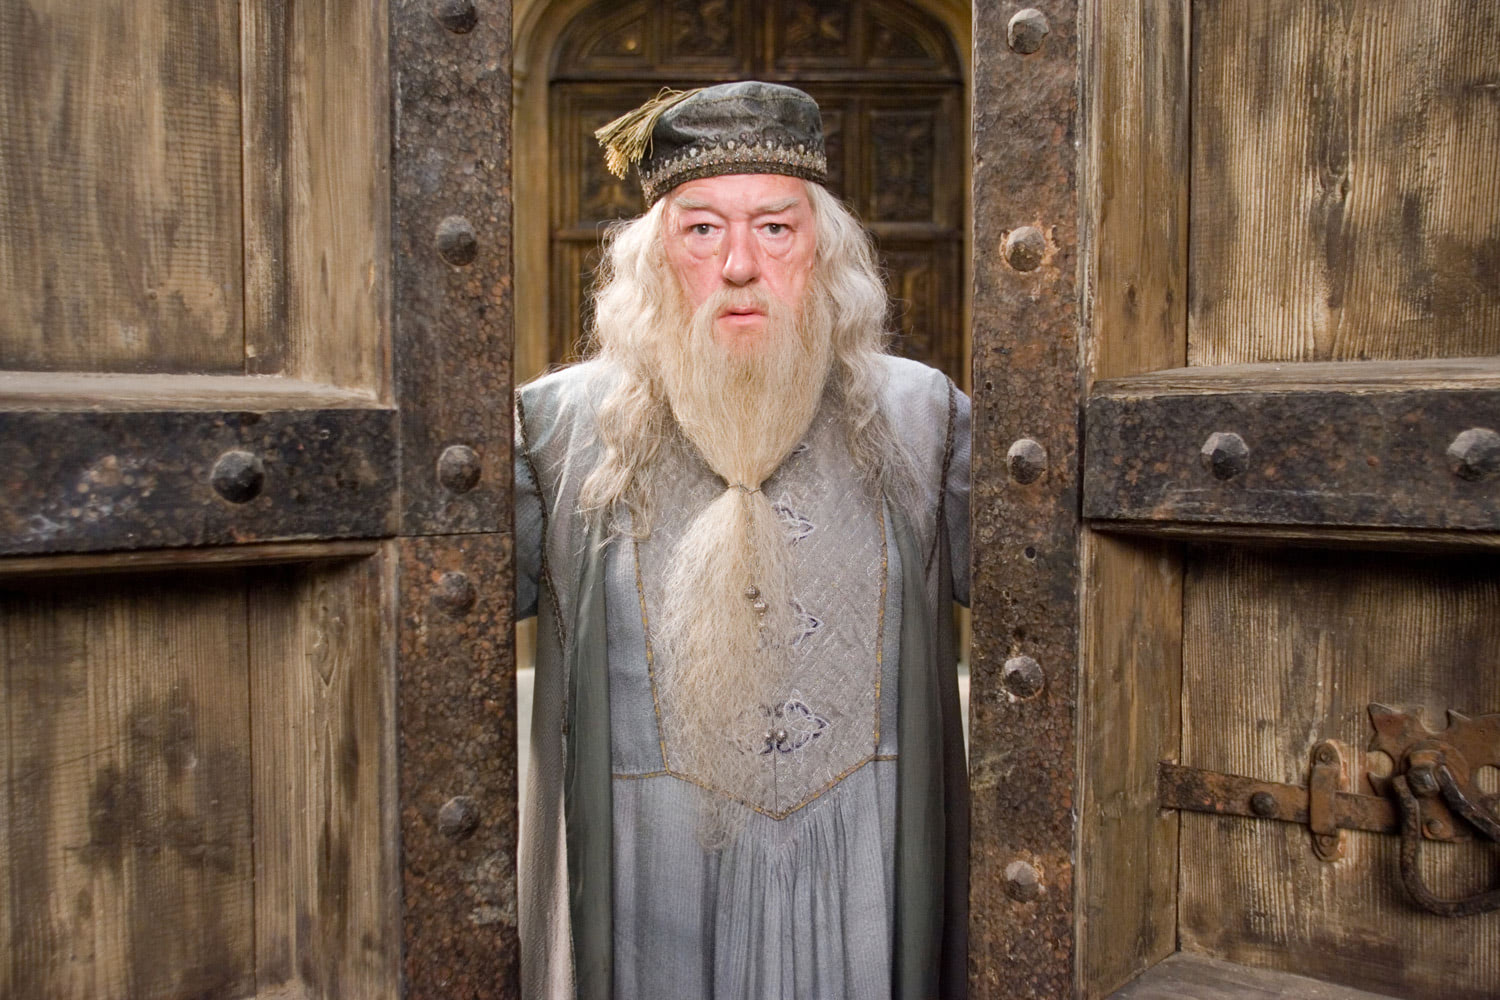 Dumbledore at the Hogwarts doors